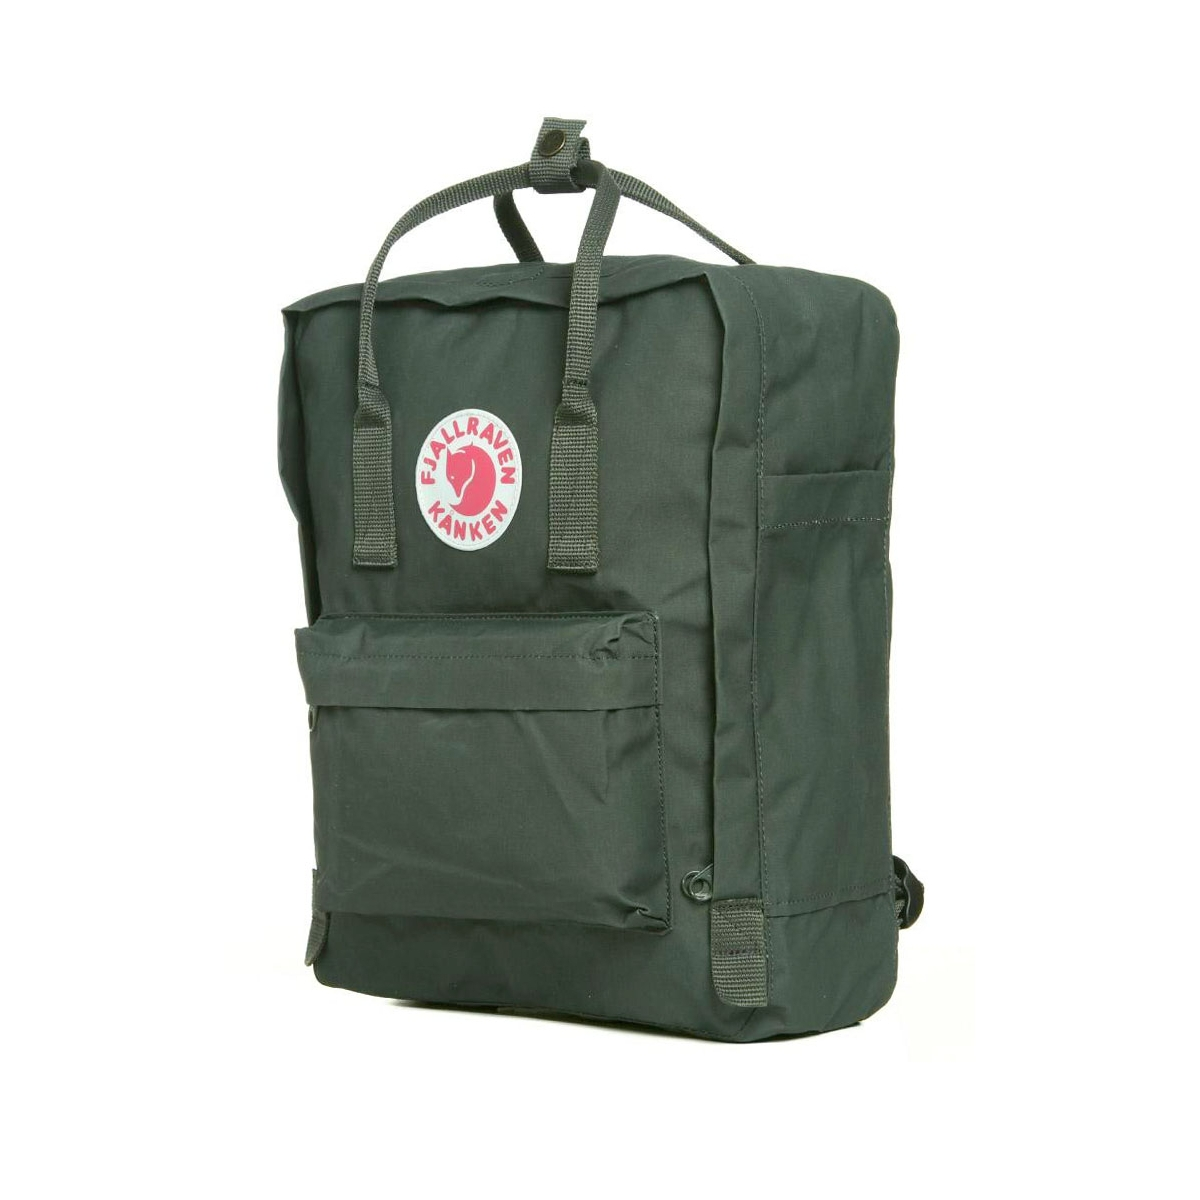 f23510 fjallraven tas 619 salvia green